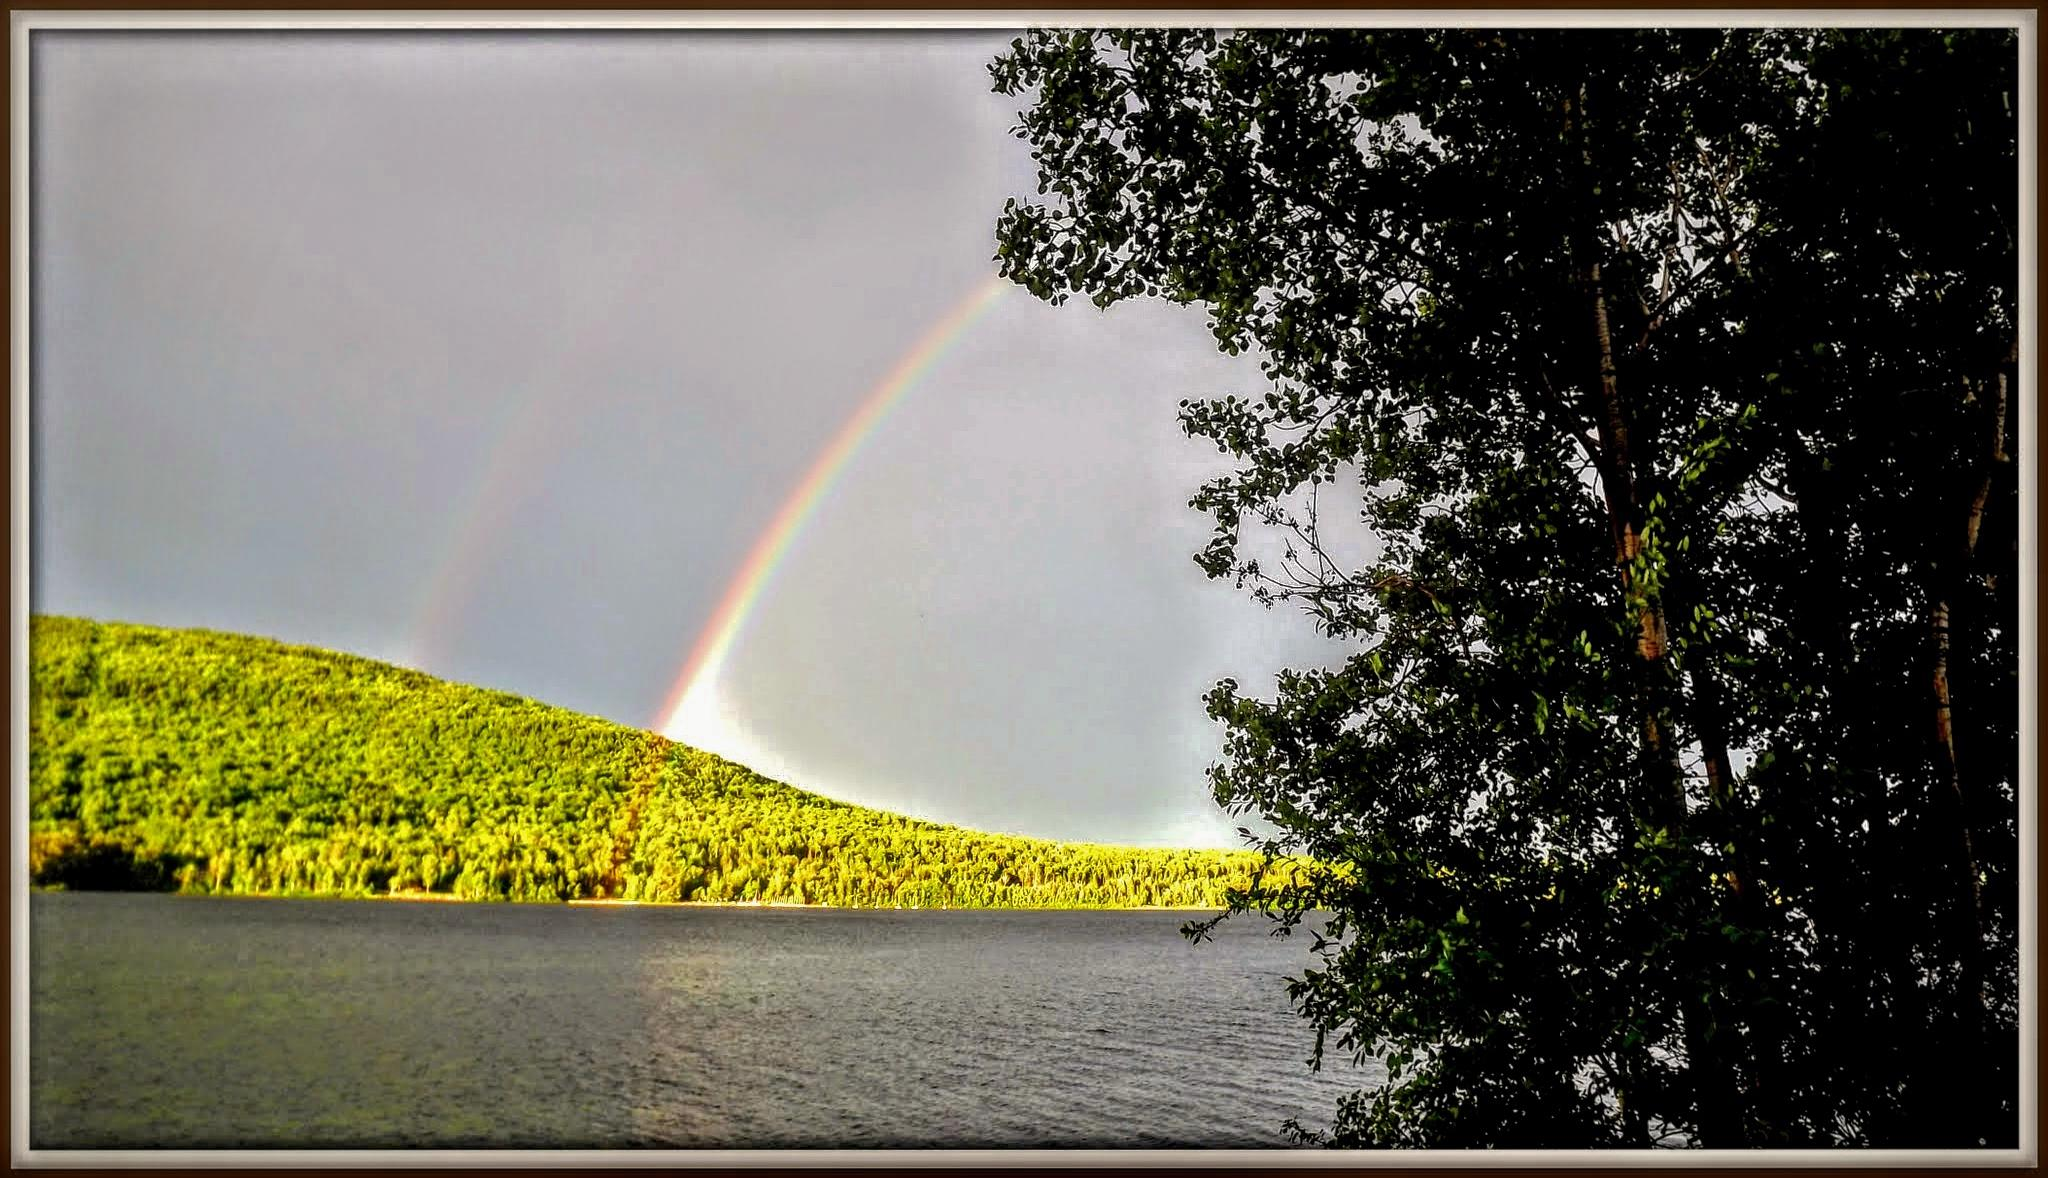 After storm by real.michaud.5036